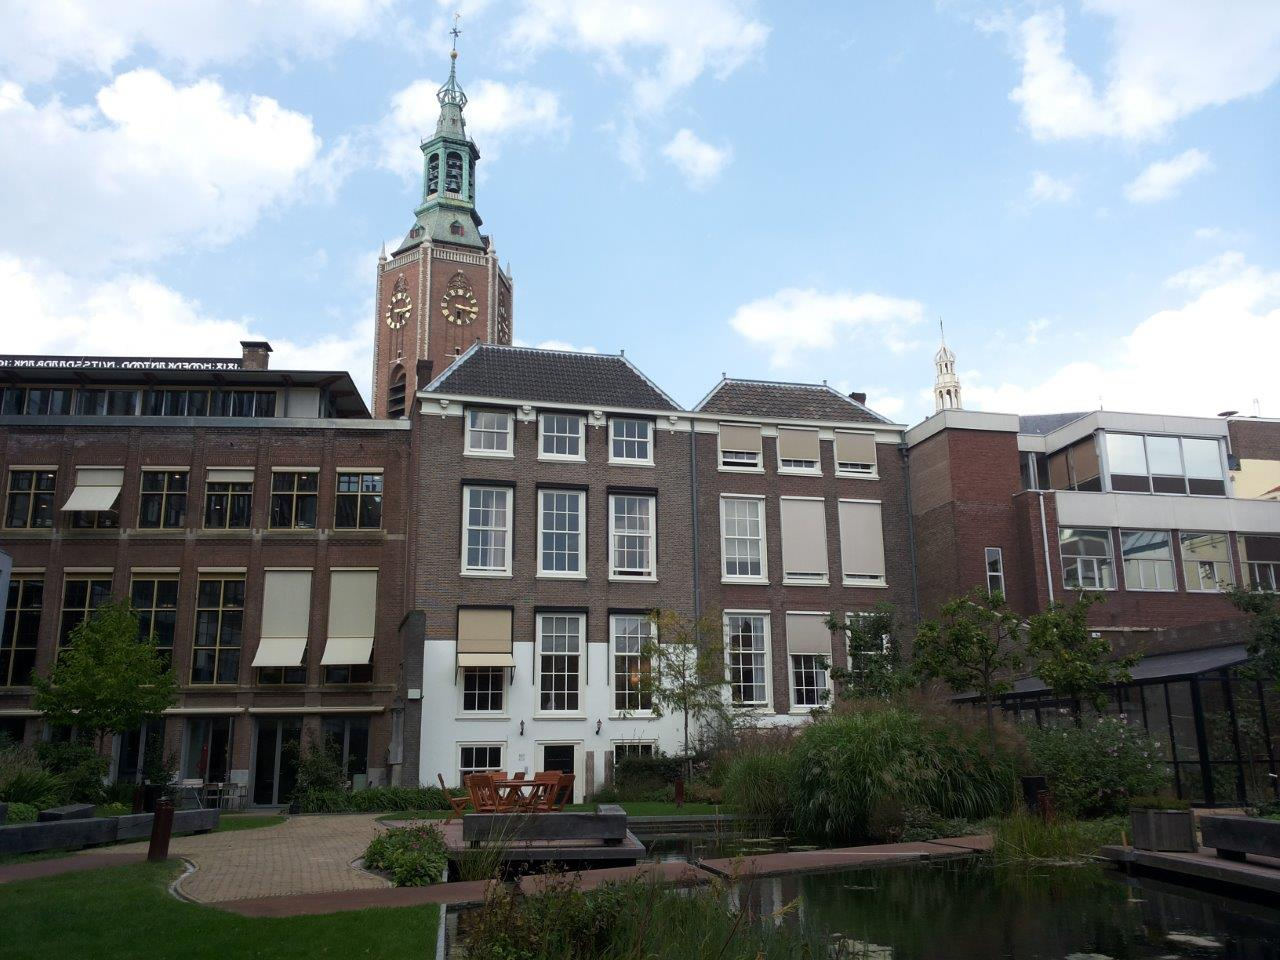 points of interest in The Hague